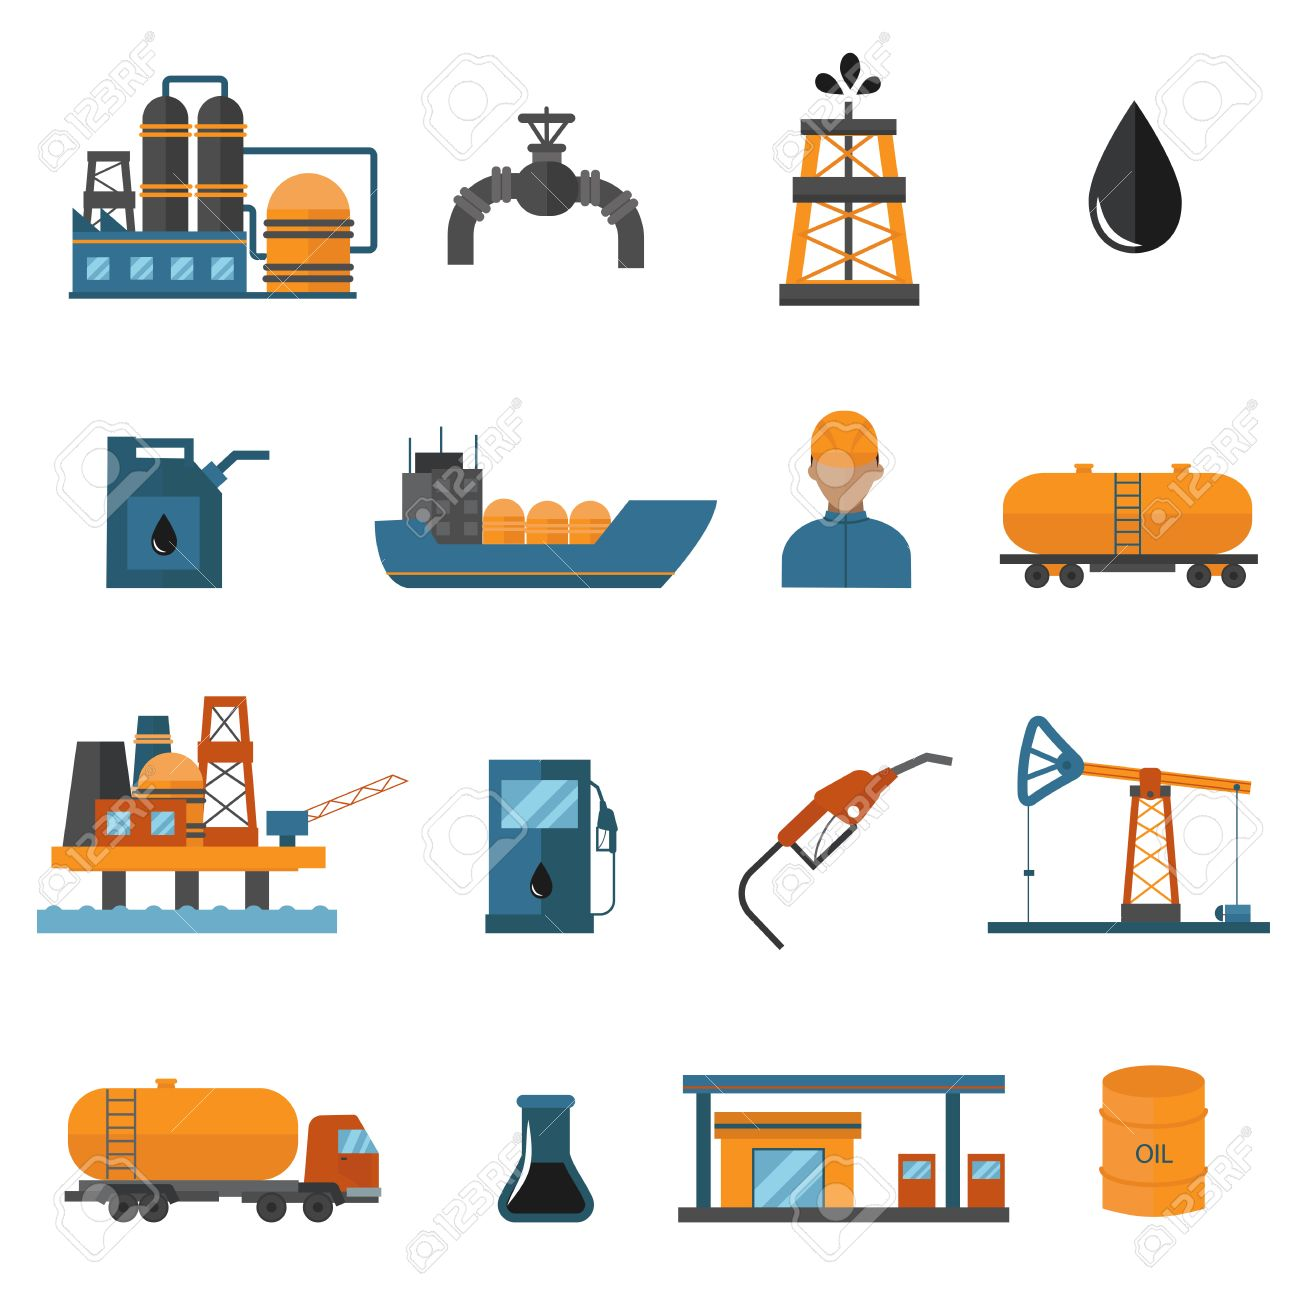 Oil gas industry manufacturing and oil gas icons for infographic.